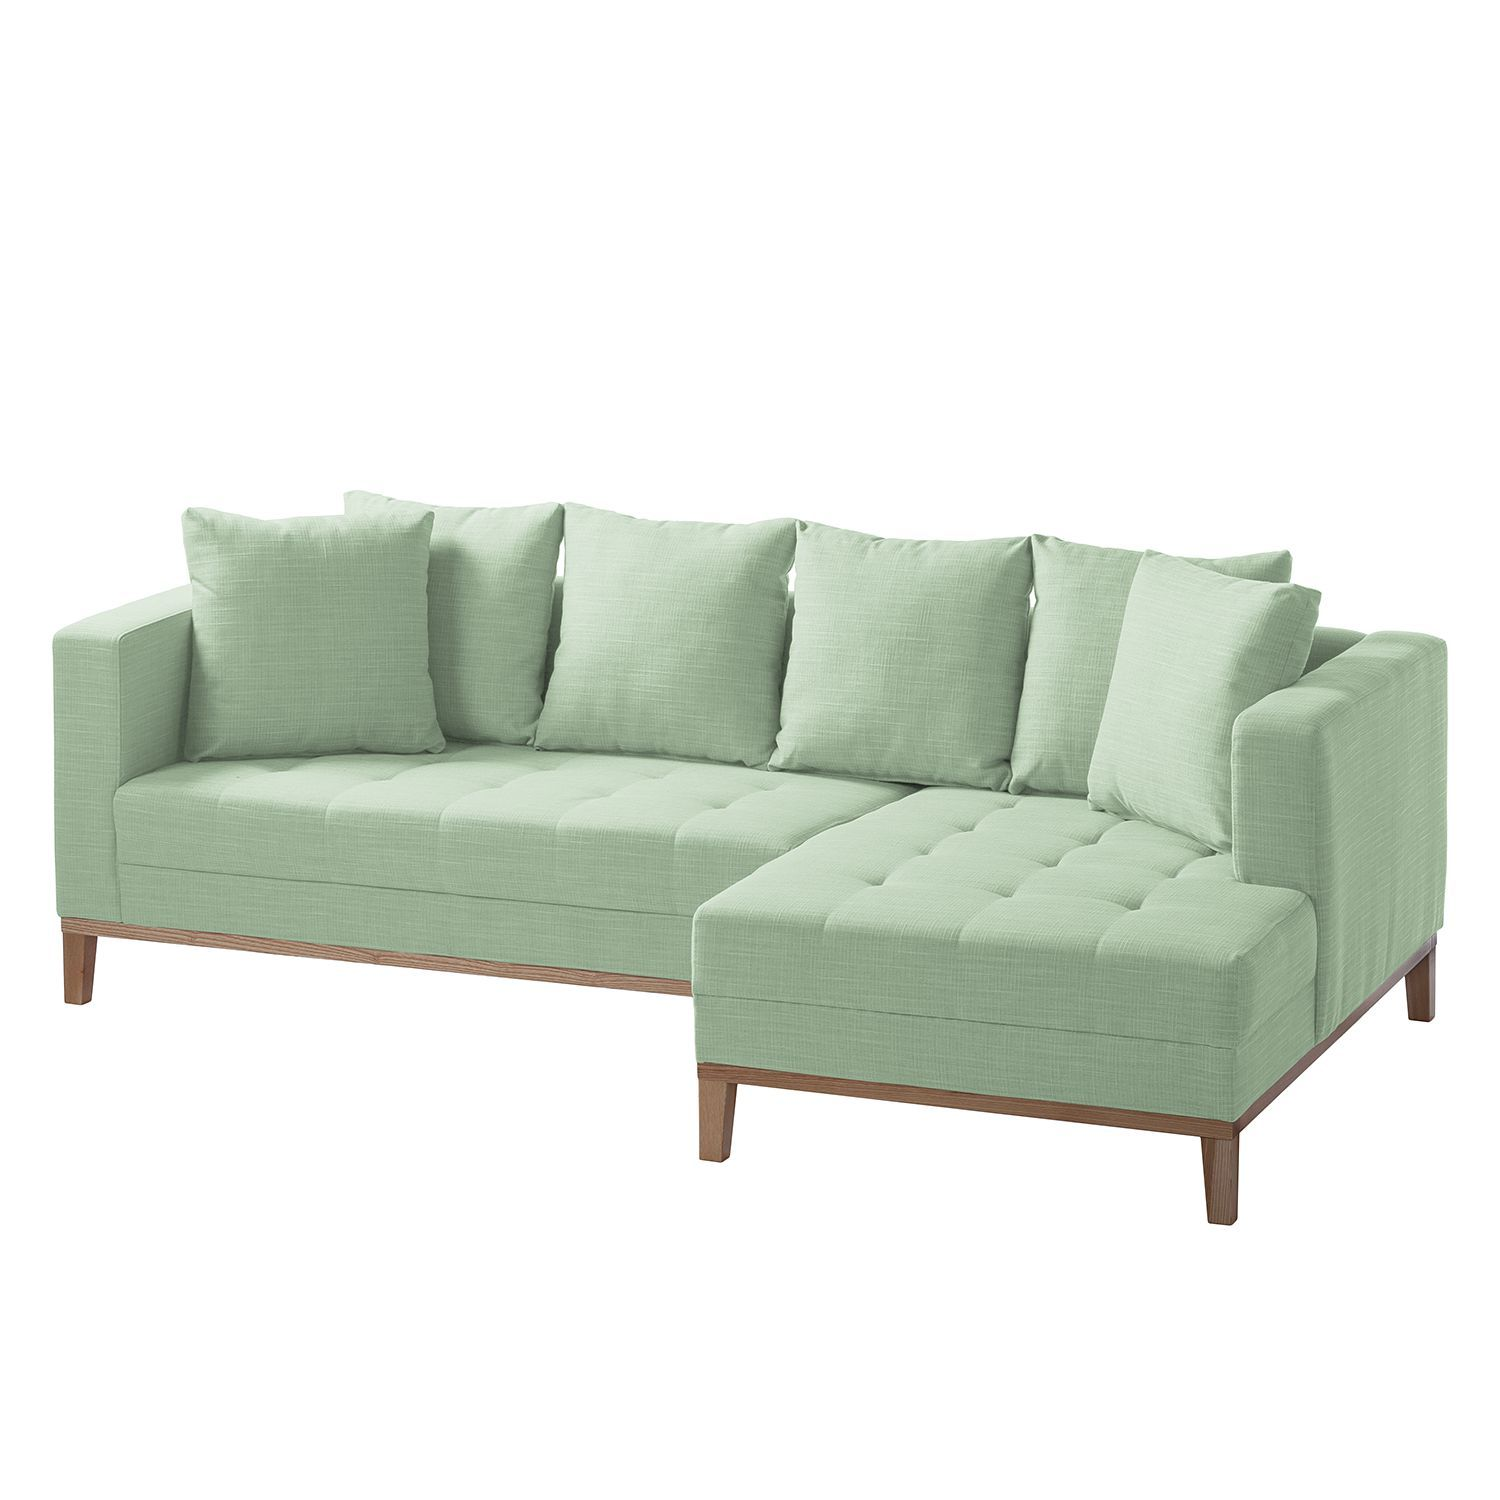 Morteens Ecksofa Sofa Webstoff Interesting Sofa Croom I Sitzer Webstoff With Sofa